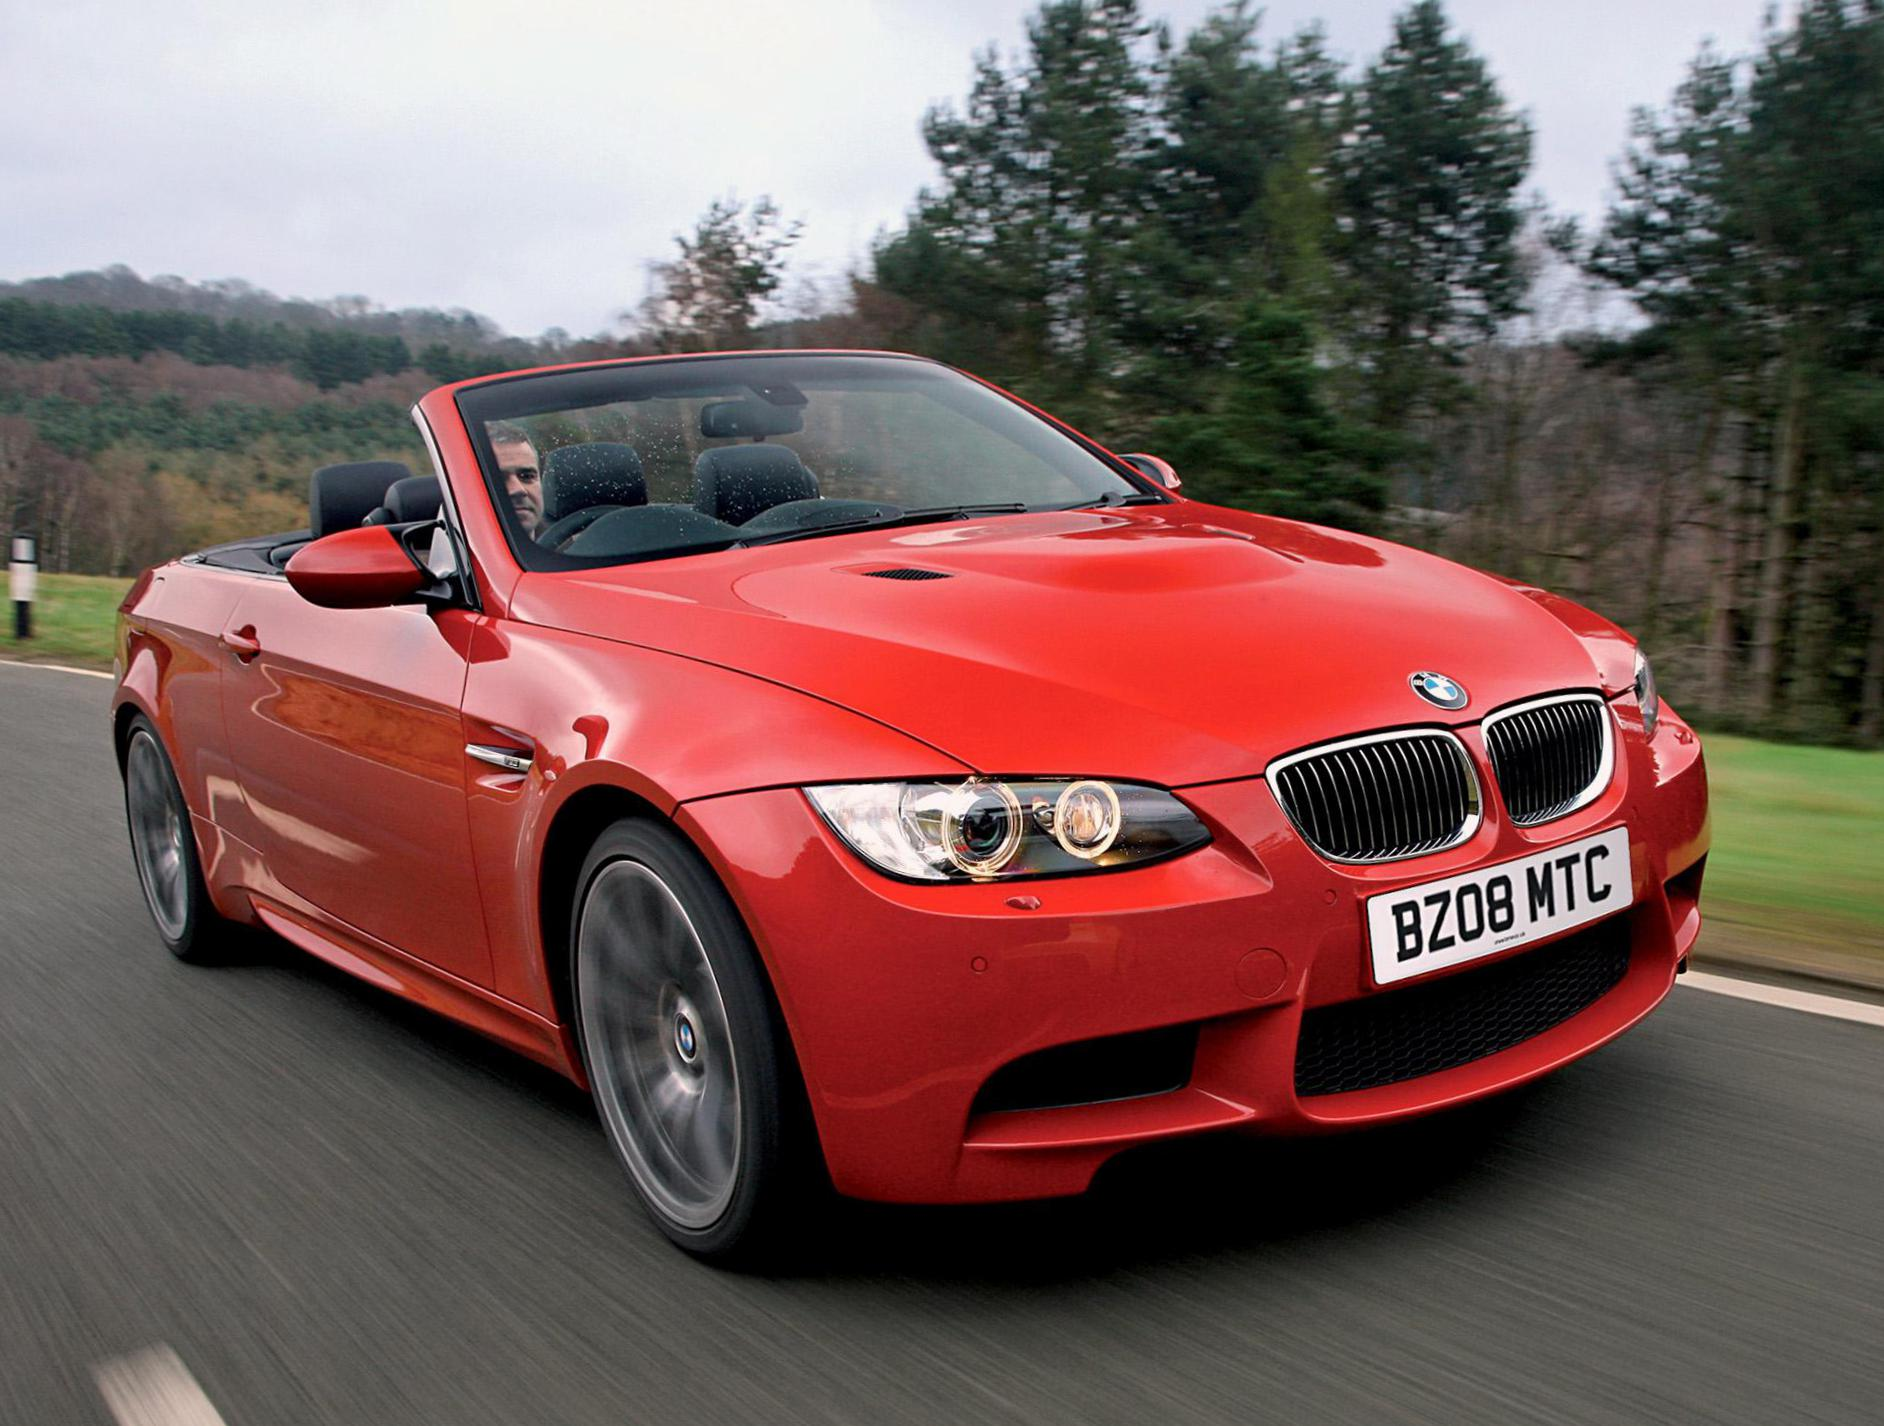 BMW 3 Series Cabrio (E93) reviews 2013